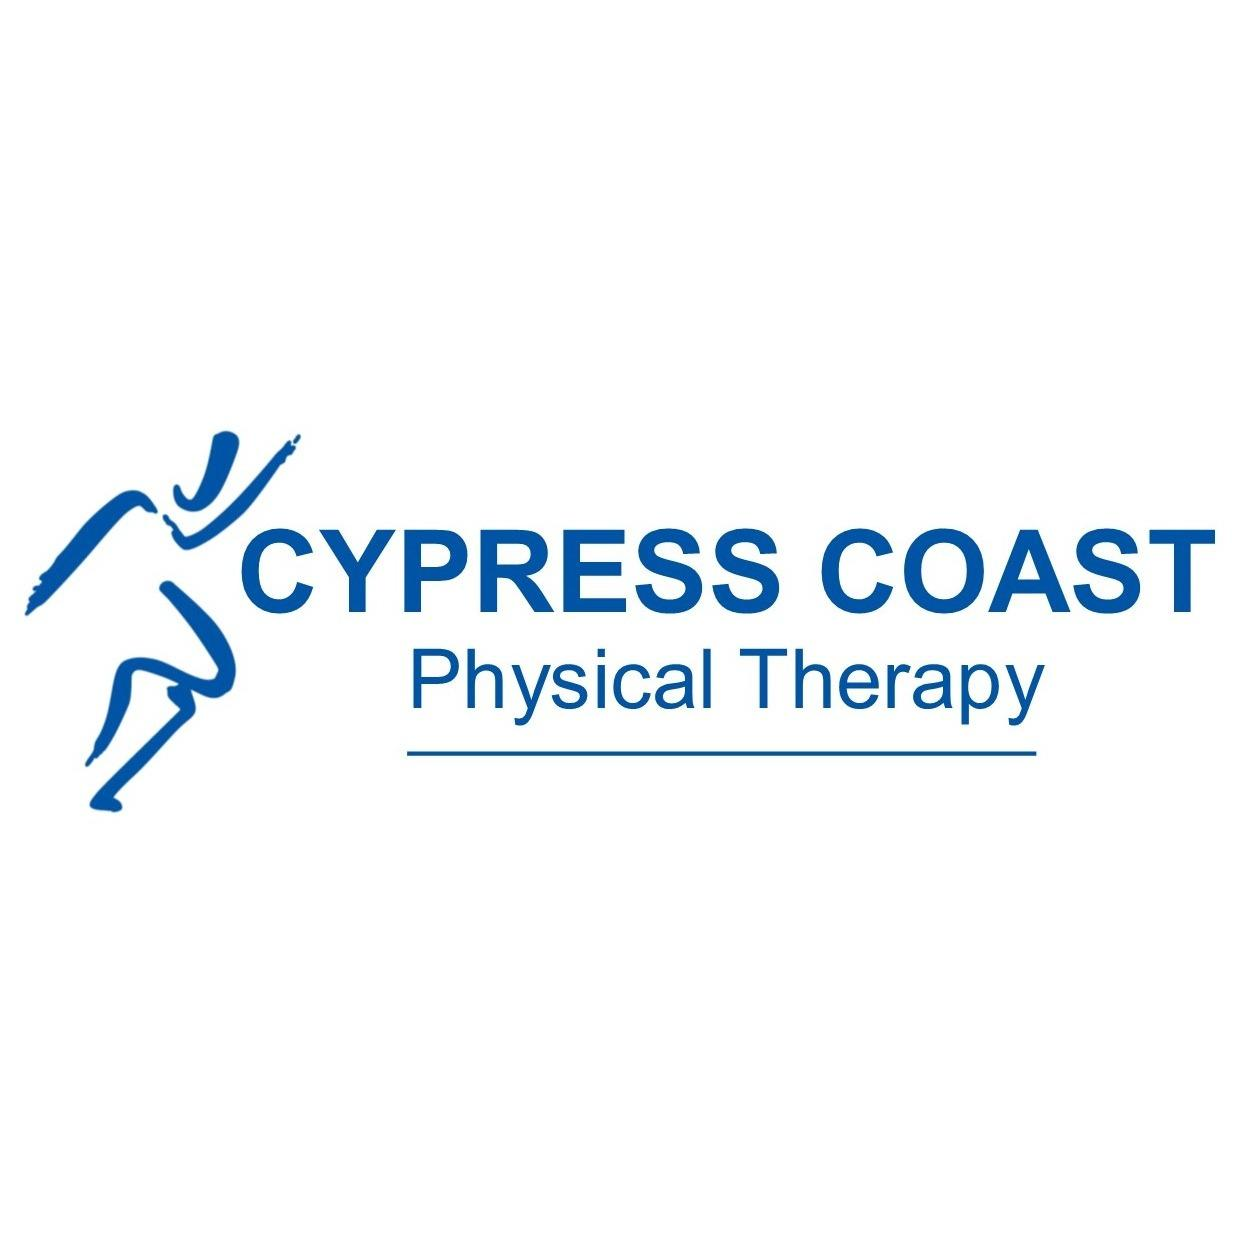 Cypress Coast Physical Therapy